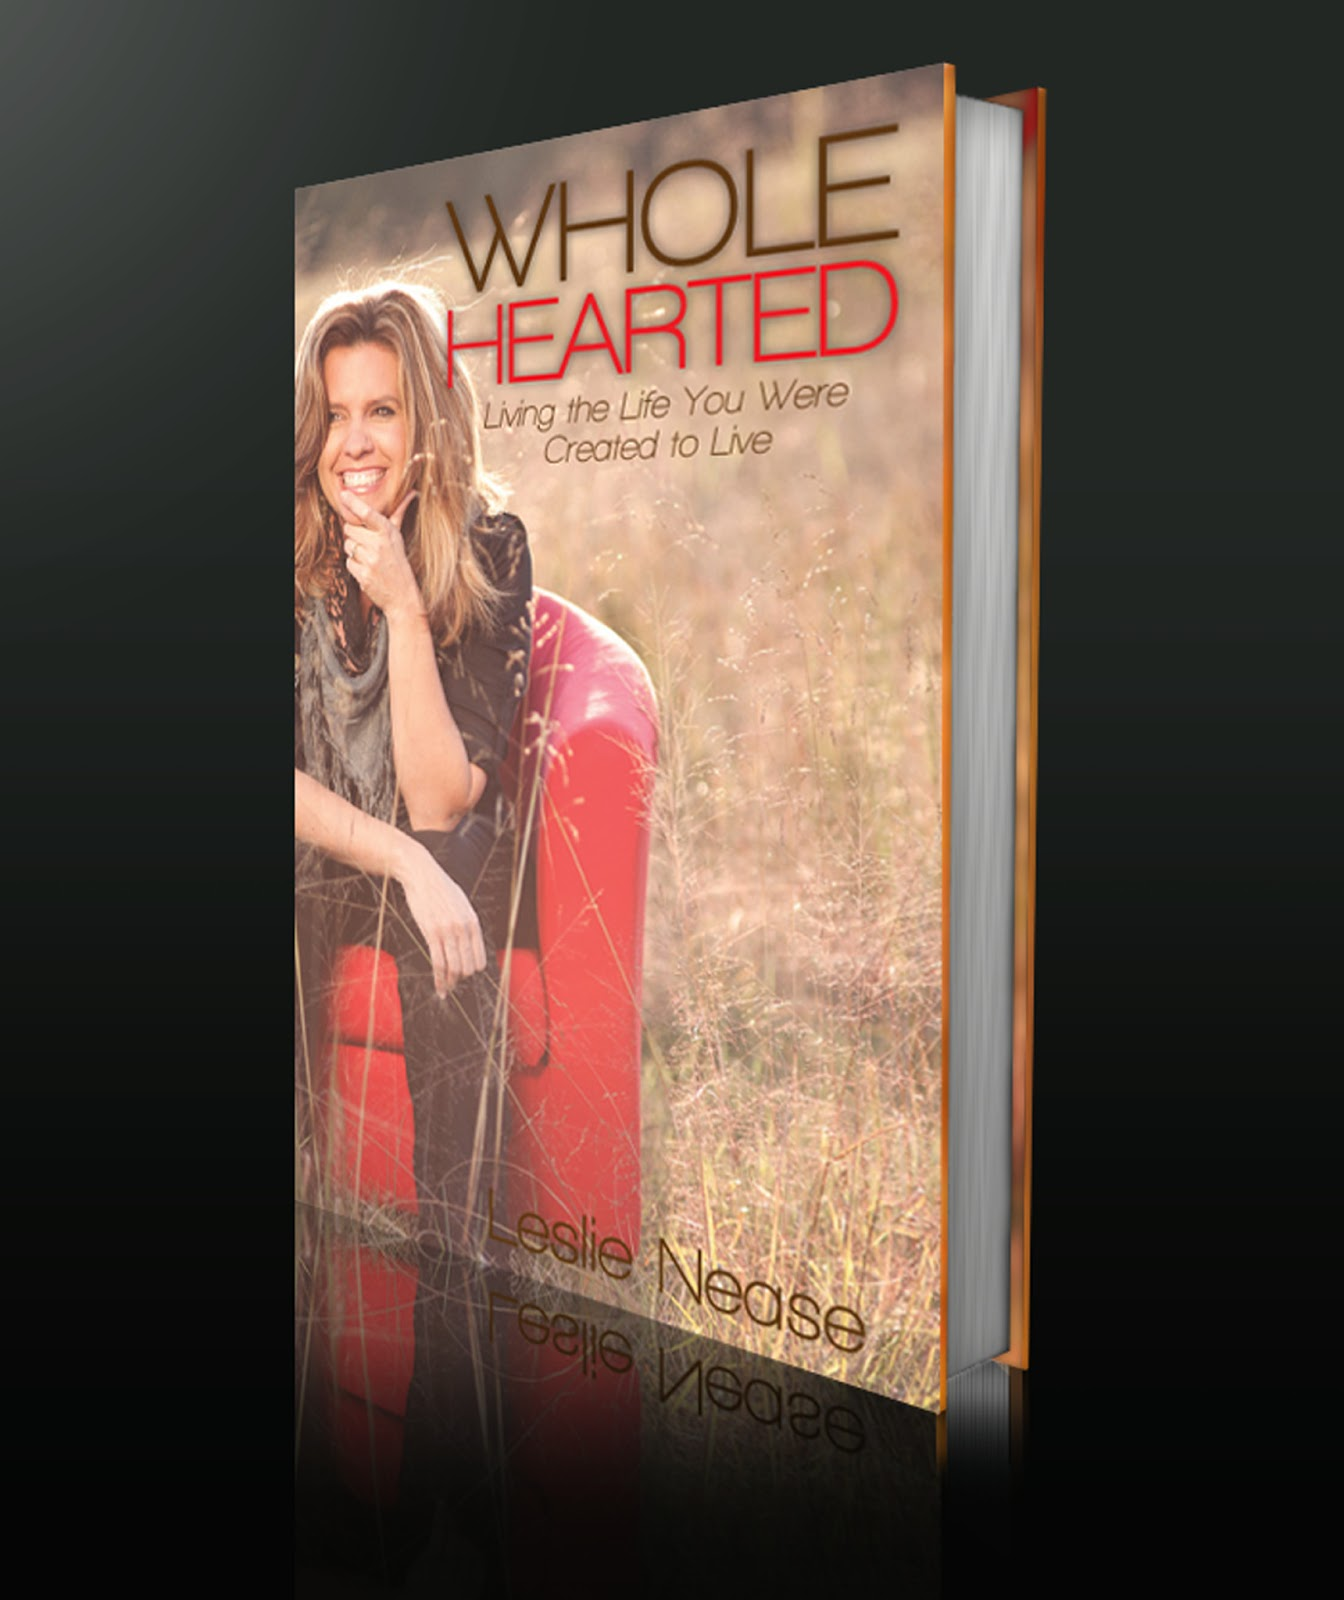 Wholehearted: Living the Life You Were Created to Live Leslie Nease